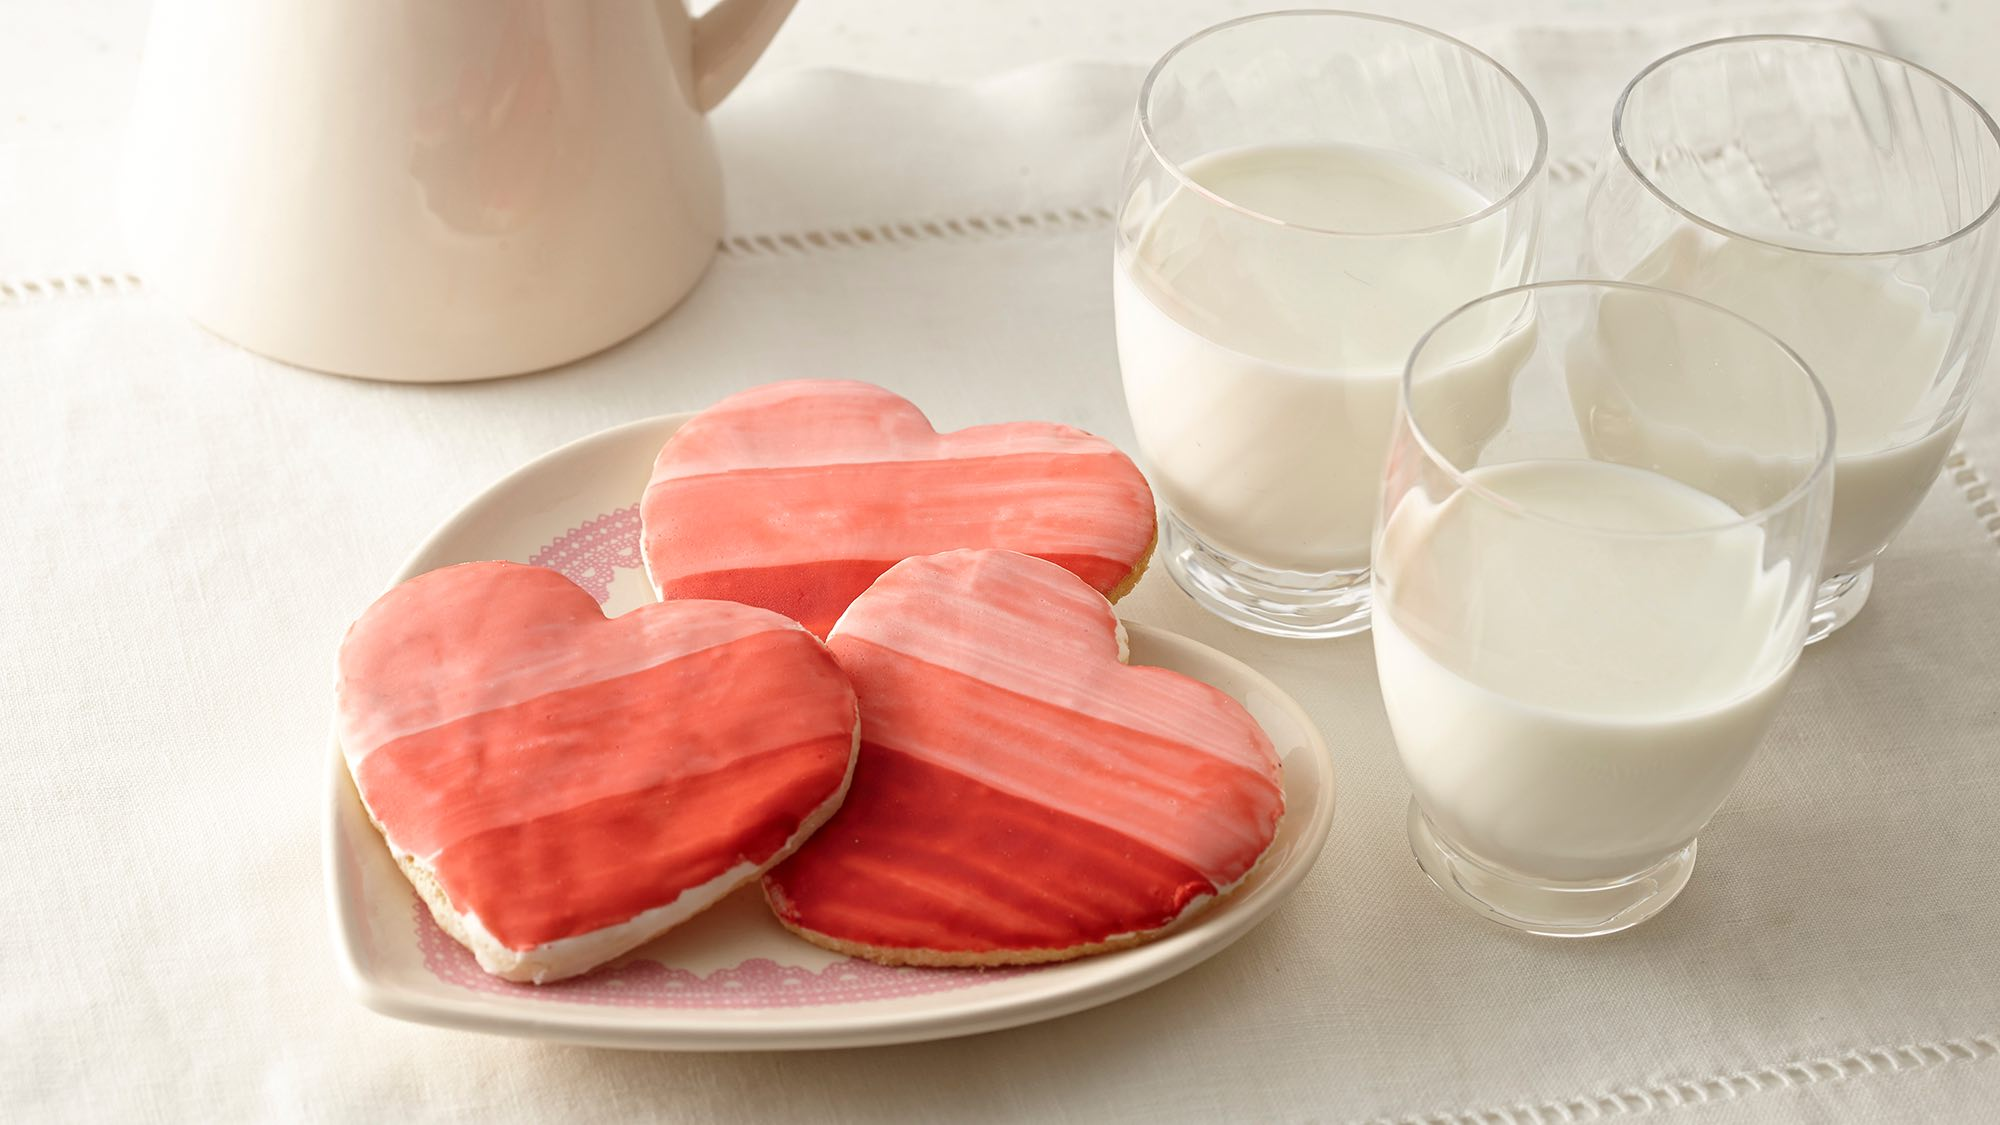 McCormick Heart-Shaped Painted Sugar Cookies